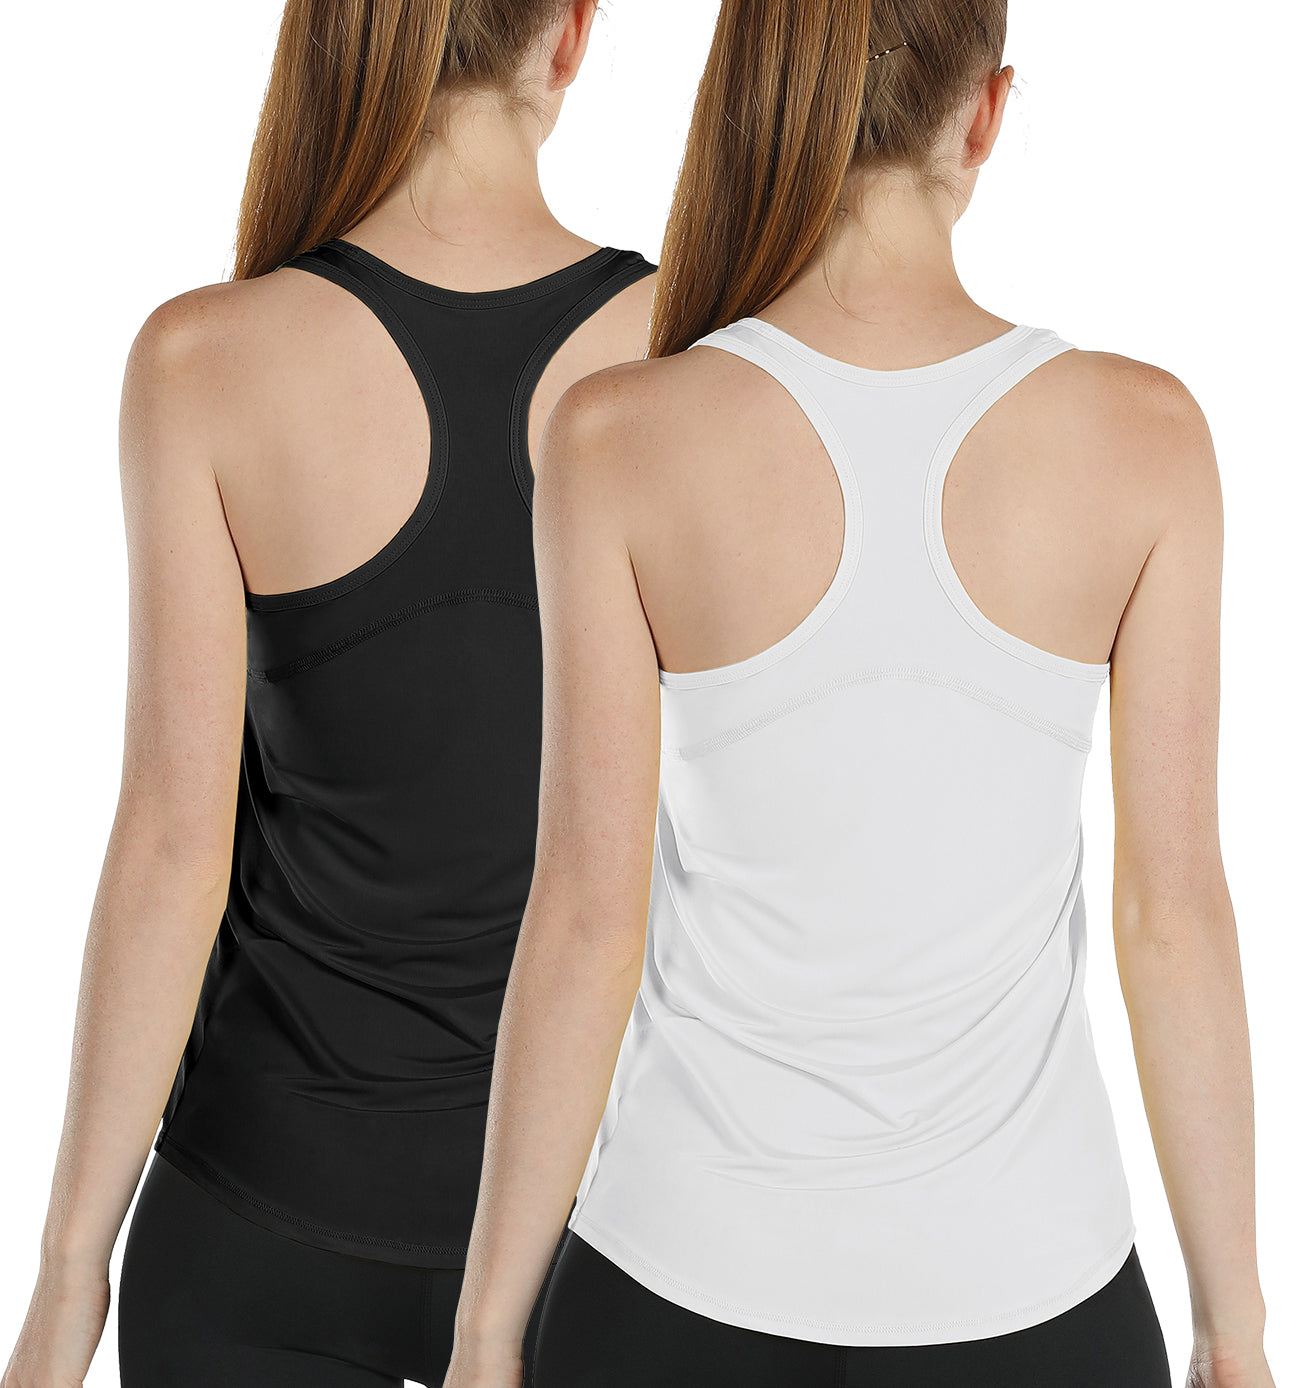 icyzone Workout Tank Tops for Women - Athletic Yoga Tops, Racerback Running Tank Top, Exercise Gym Shirts (Pack of 2)